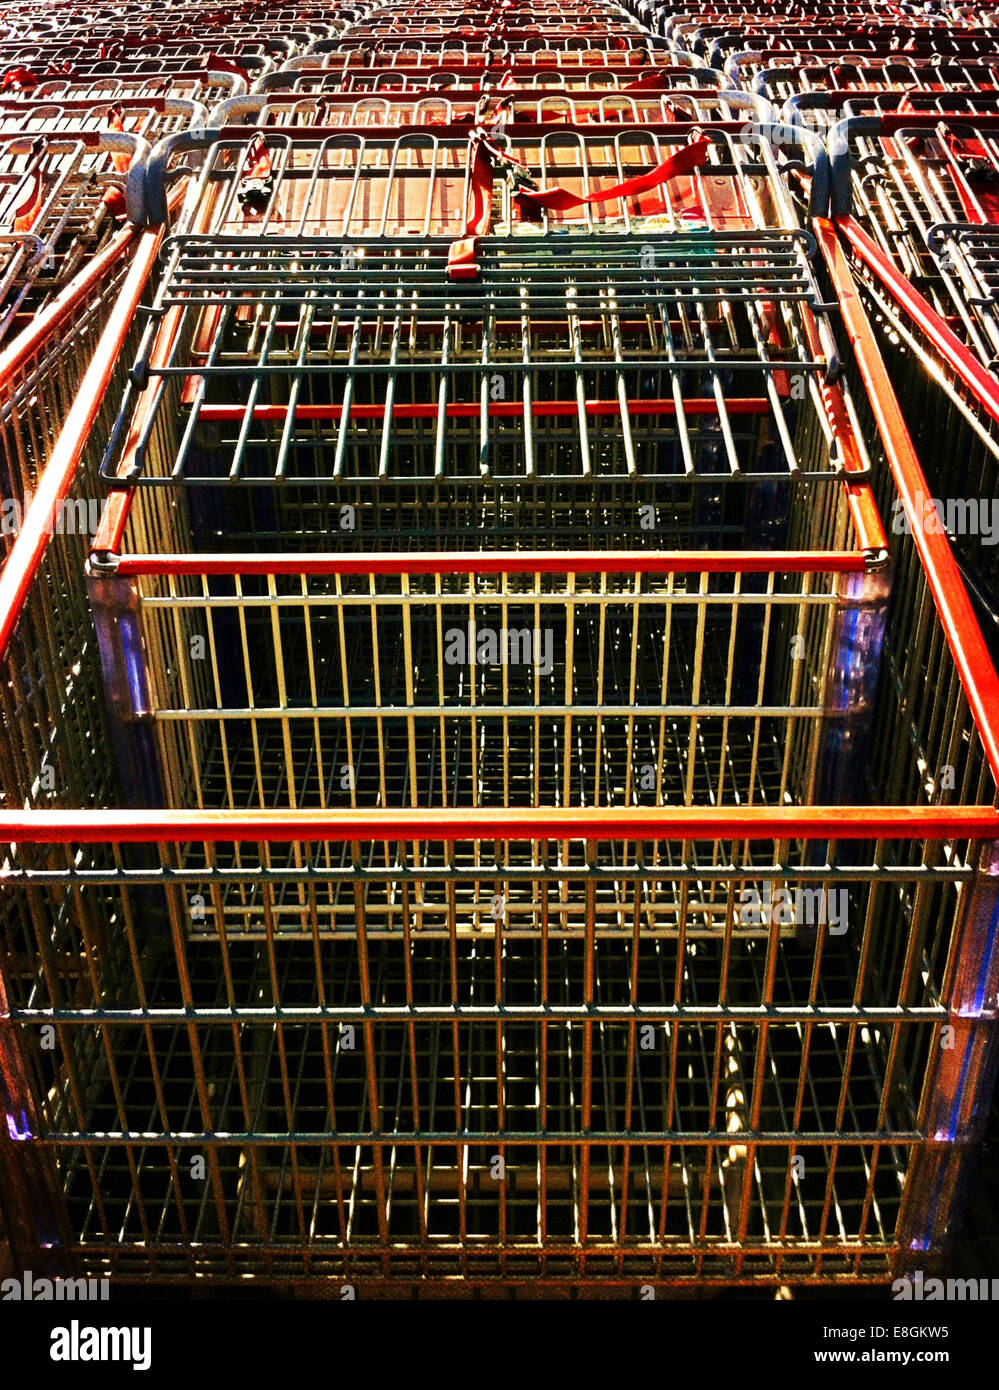 Row of shopping trolleys - Stock Image